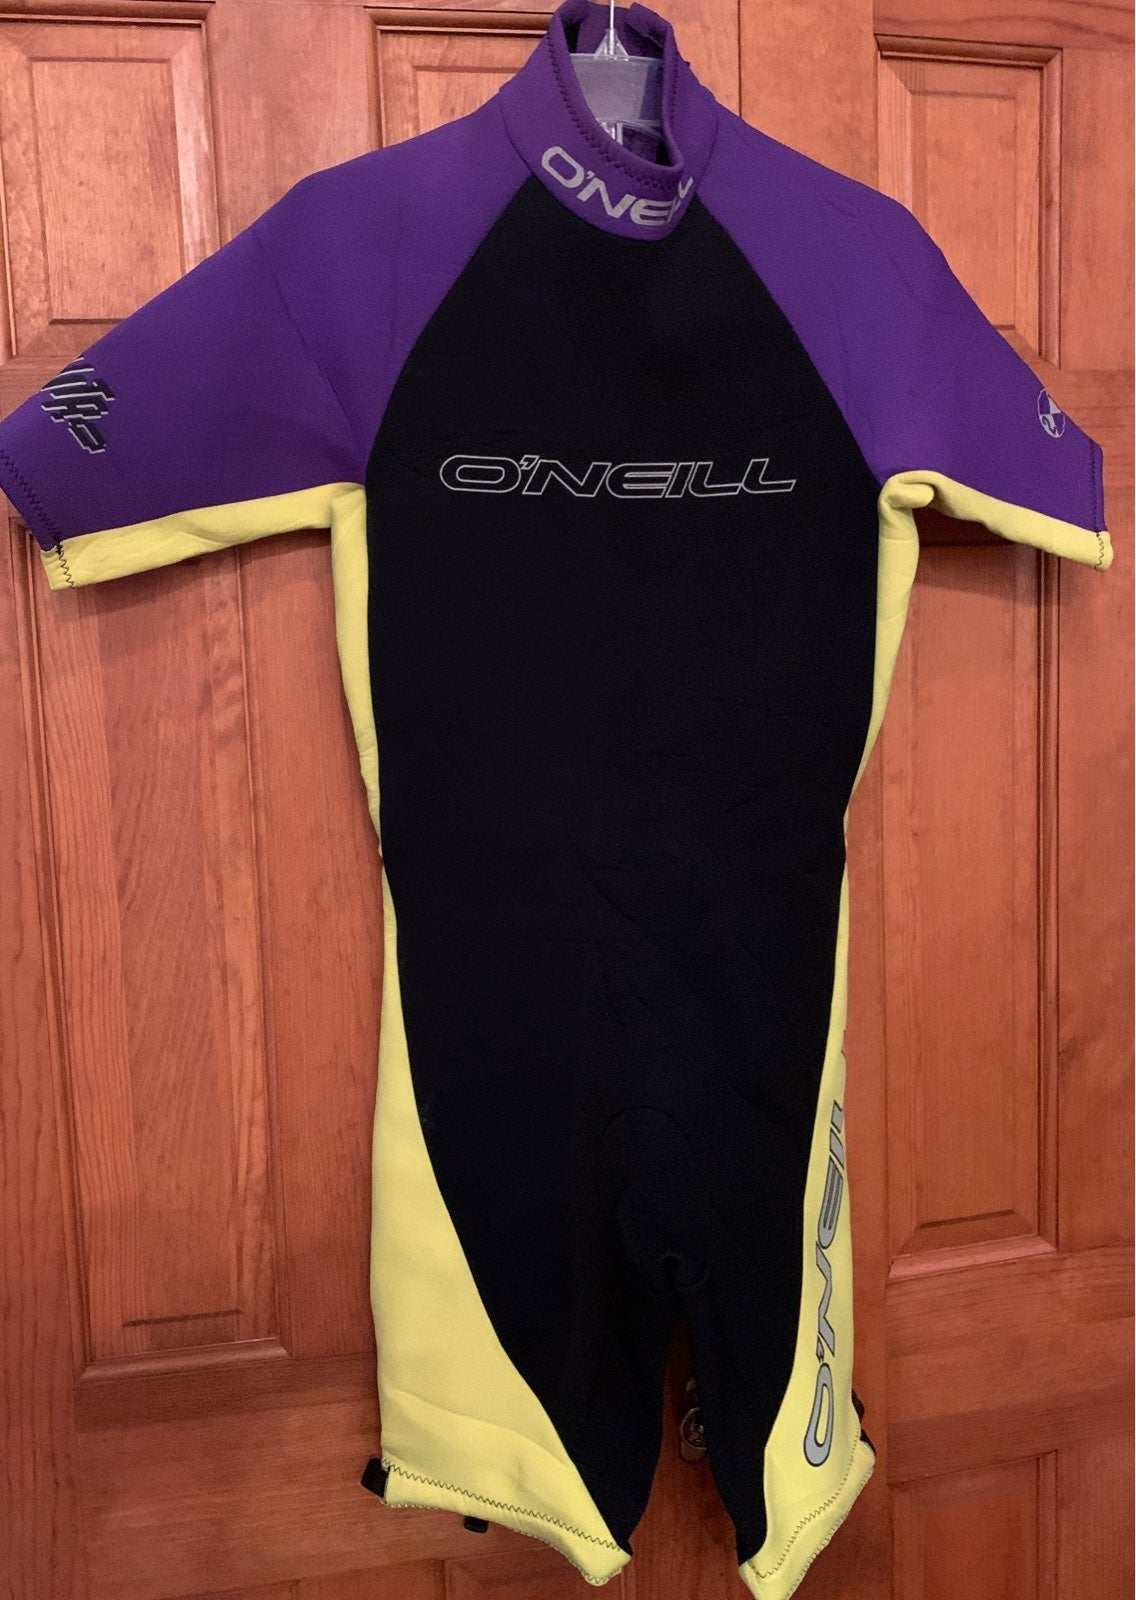 O'Neill wet suit